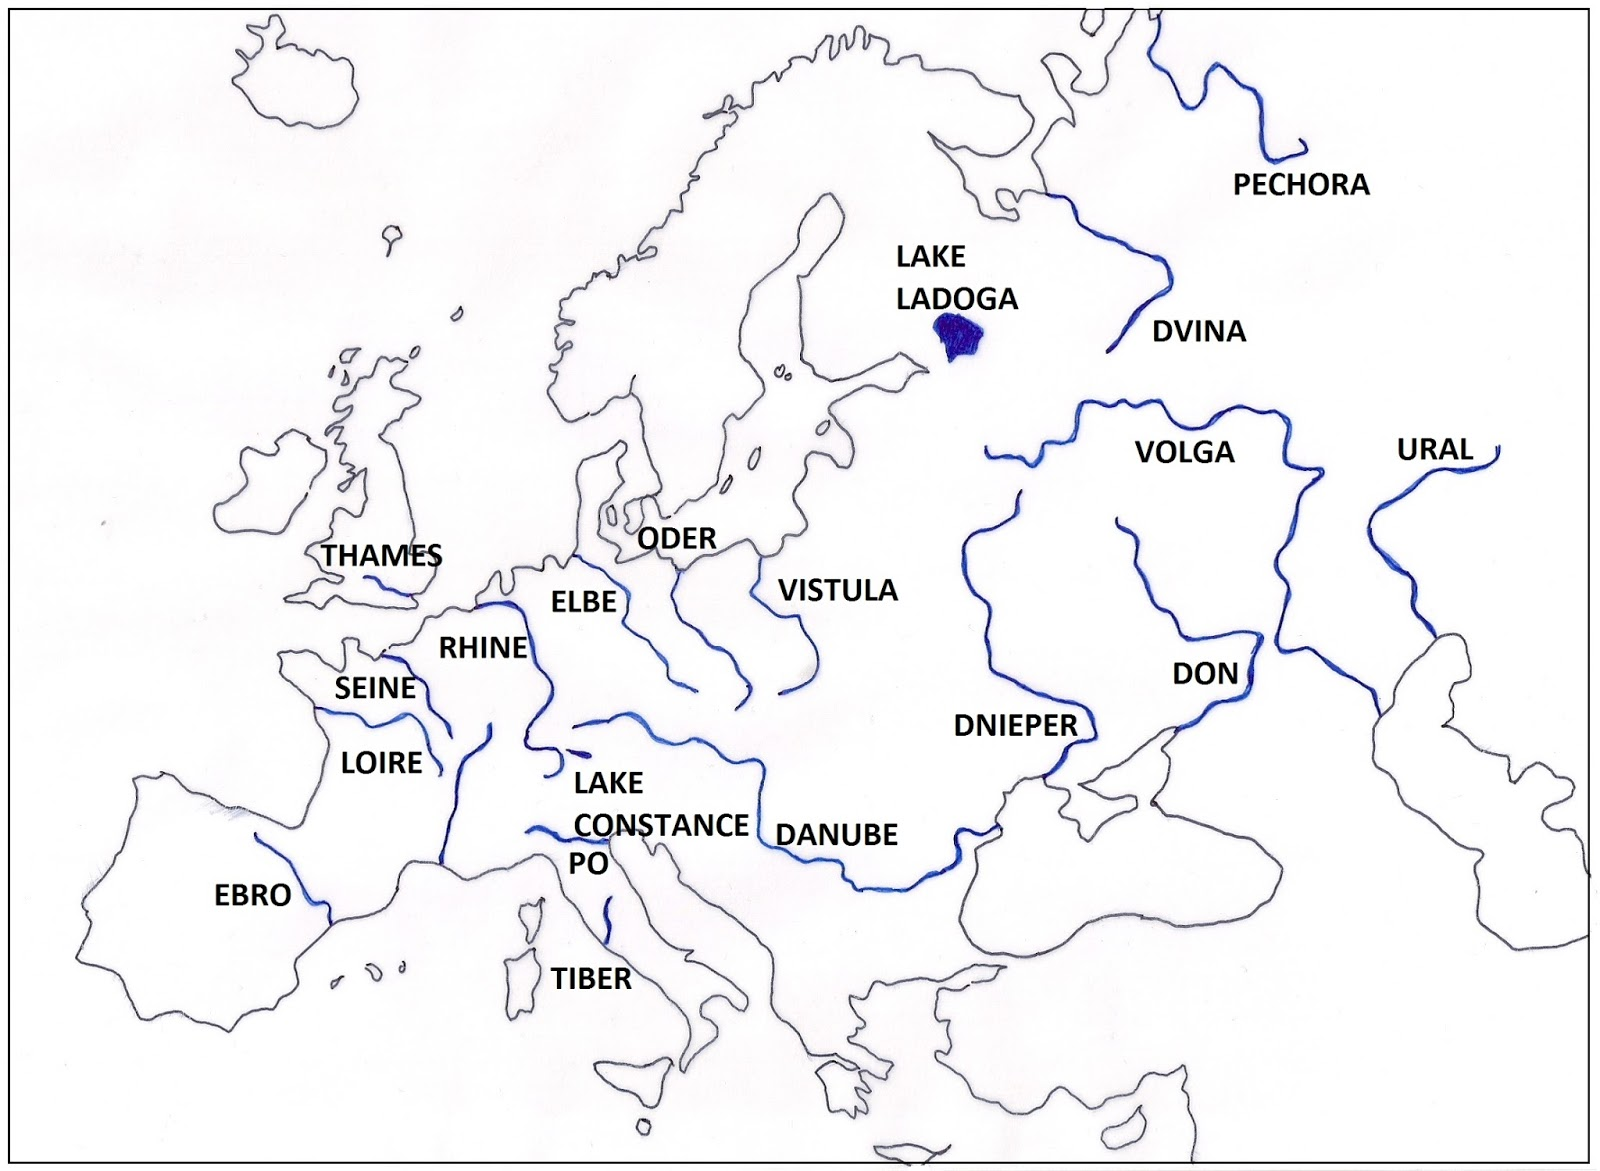 we are in grade 6 november 2015 The Peninsula in Europe Are Located Where lakes are usually fed by rivers which flow into them but they also receive rainfall lake ladoga is the biggest lake in europe other important lake is lake